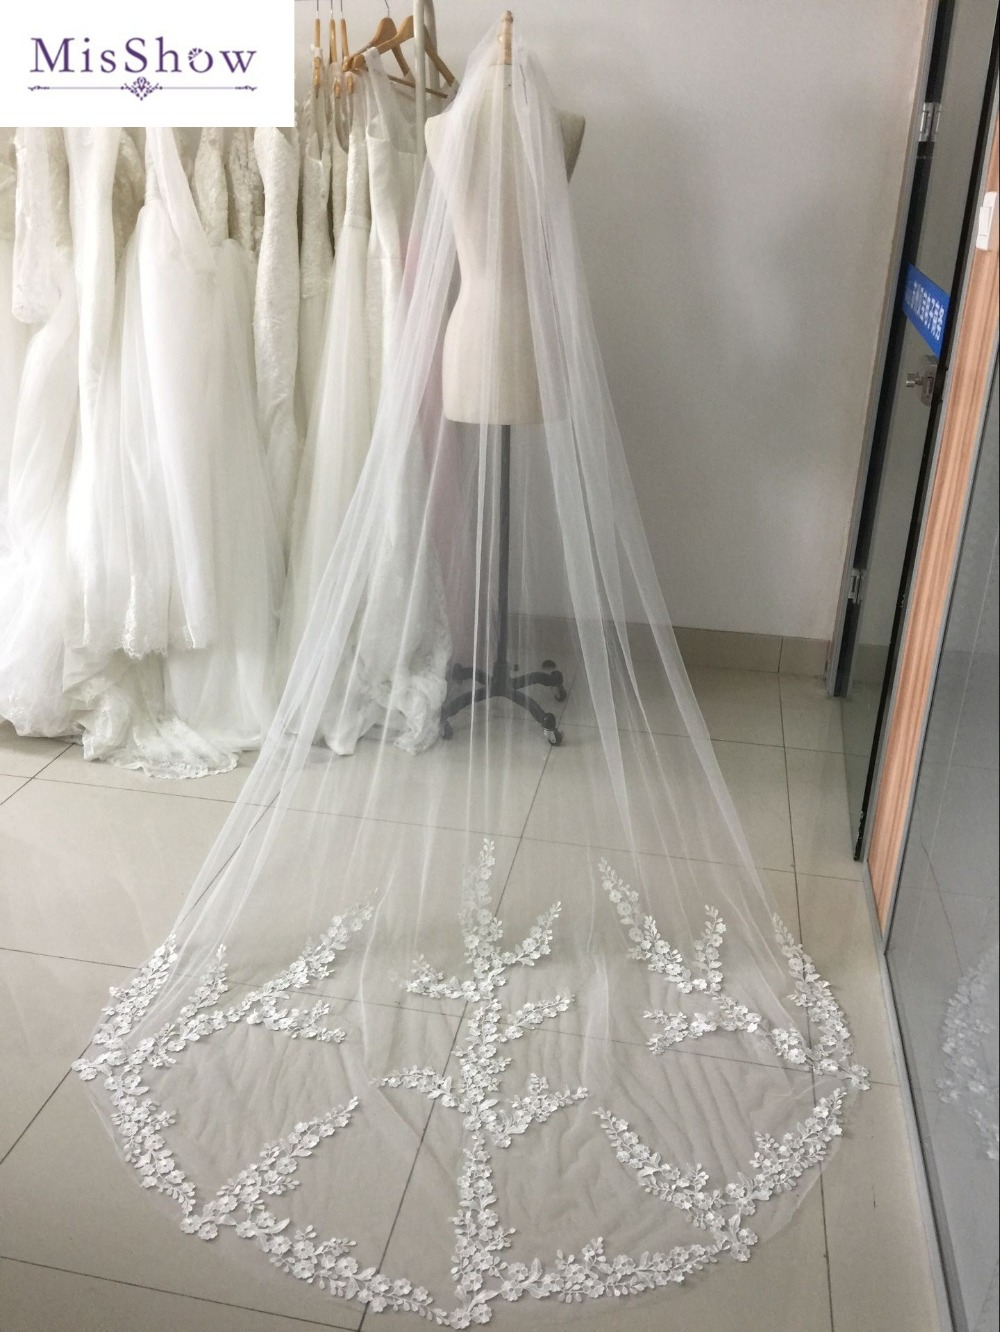 In Stock Cheap White Ivory 3 Meters Single Layer Long Wedding Veil With Comb Lace Edge Appliques Bridal Veil Wedding Accessories